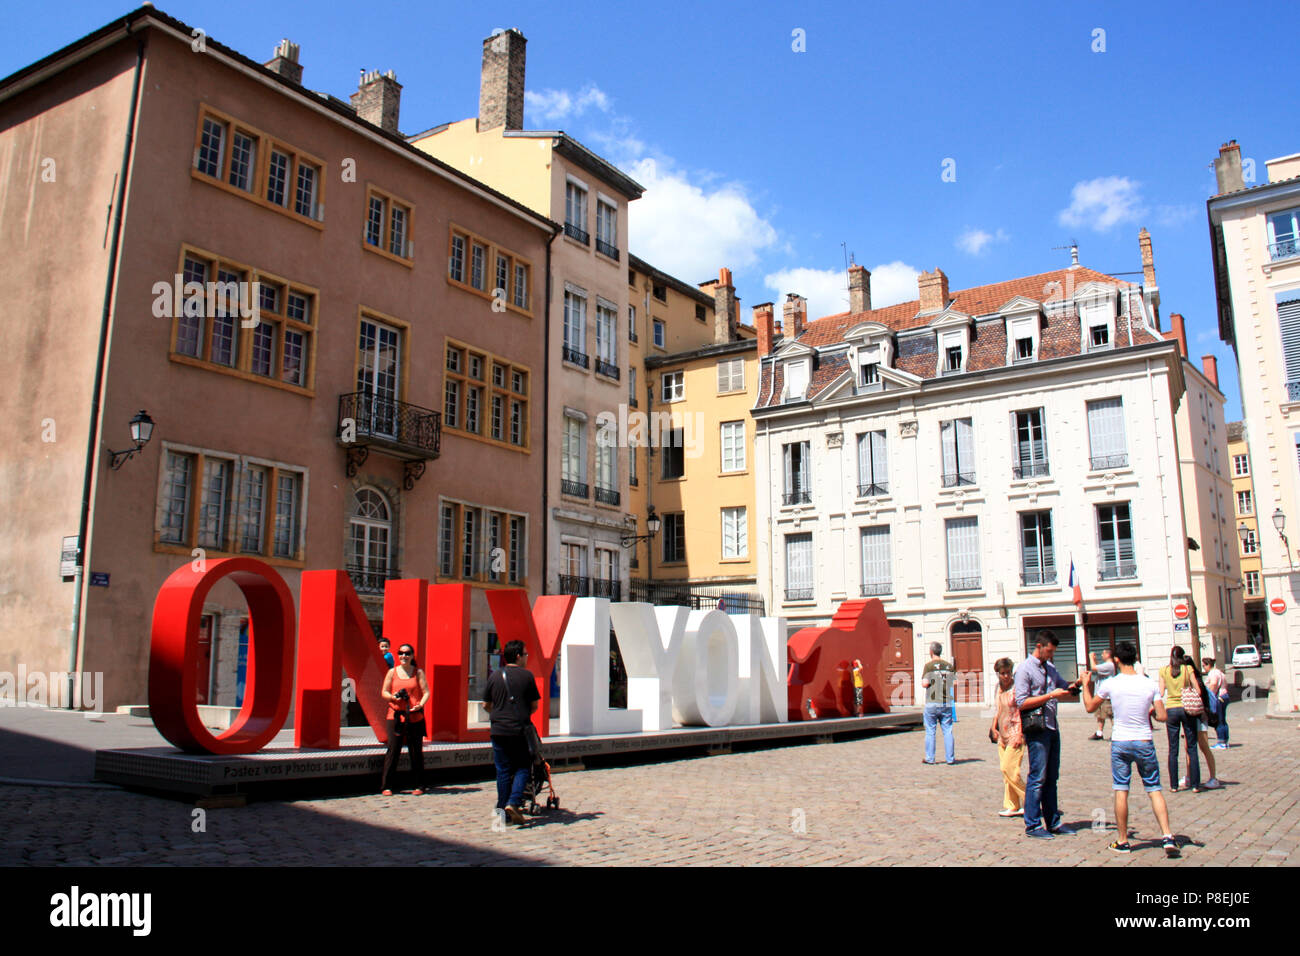 Giant capital letters 'ONLY LYON' at the Place du Change - City of Lyon, France - Stock Image